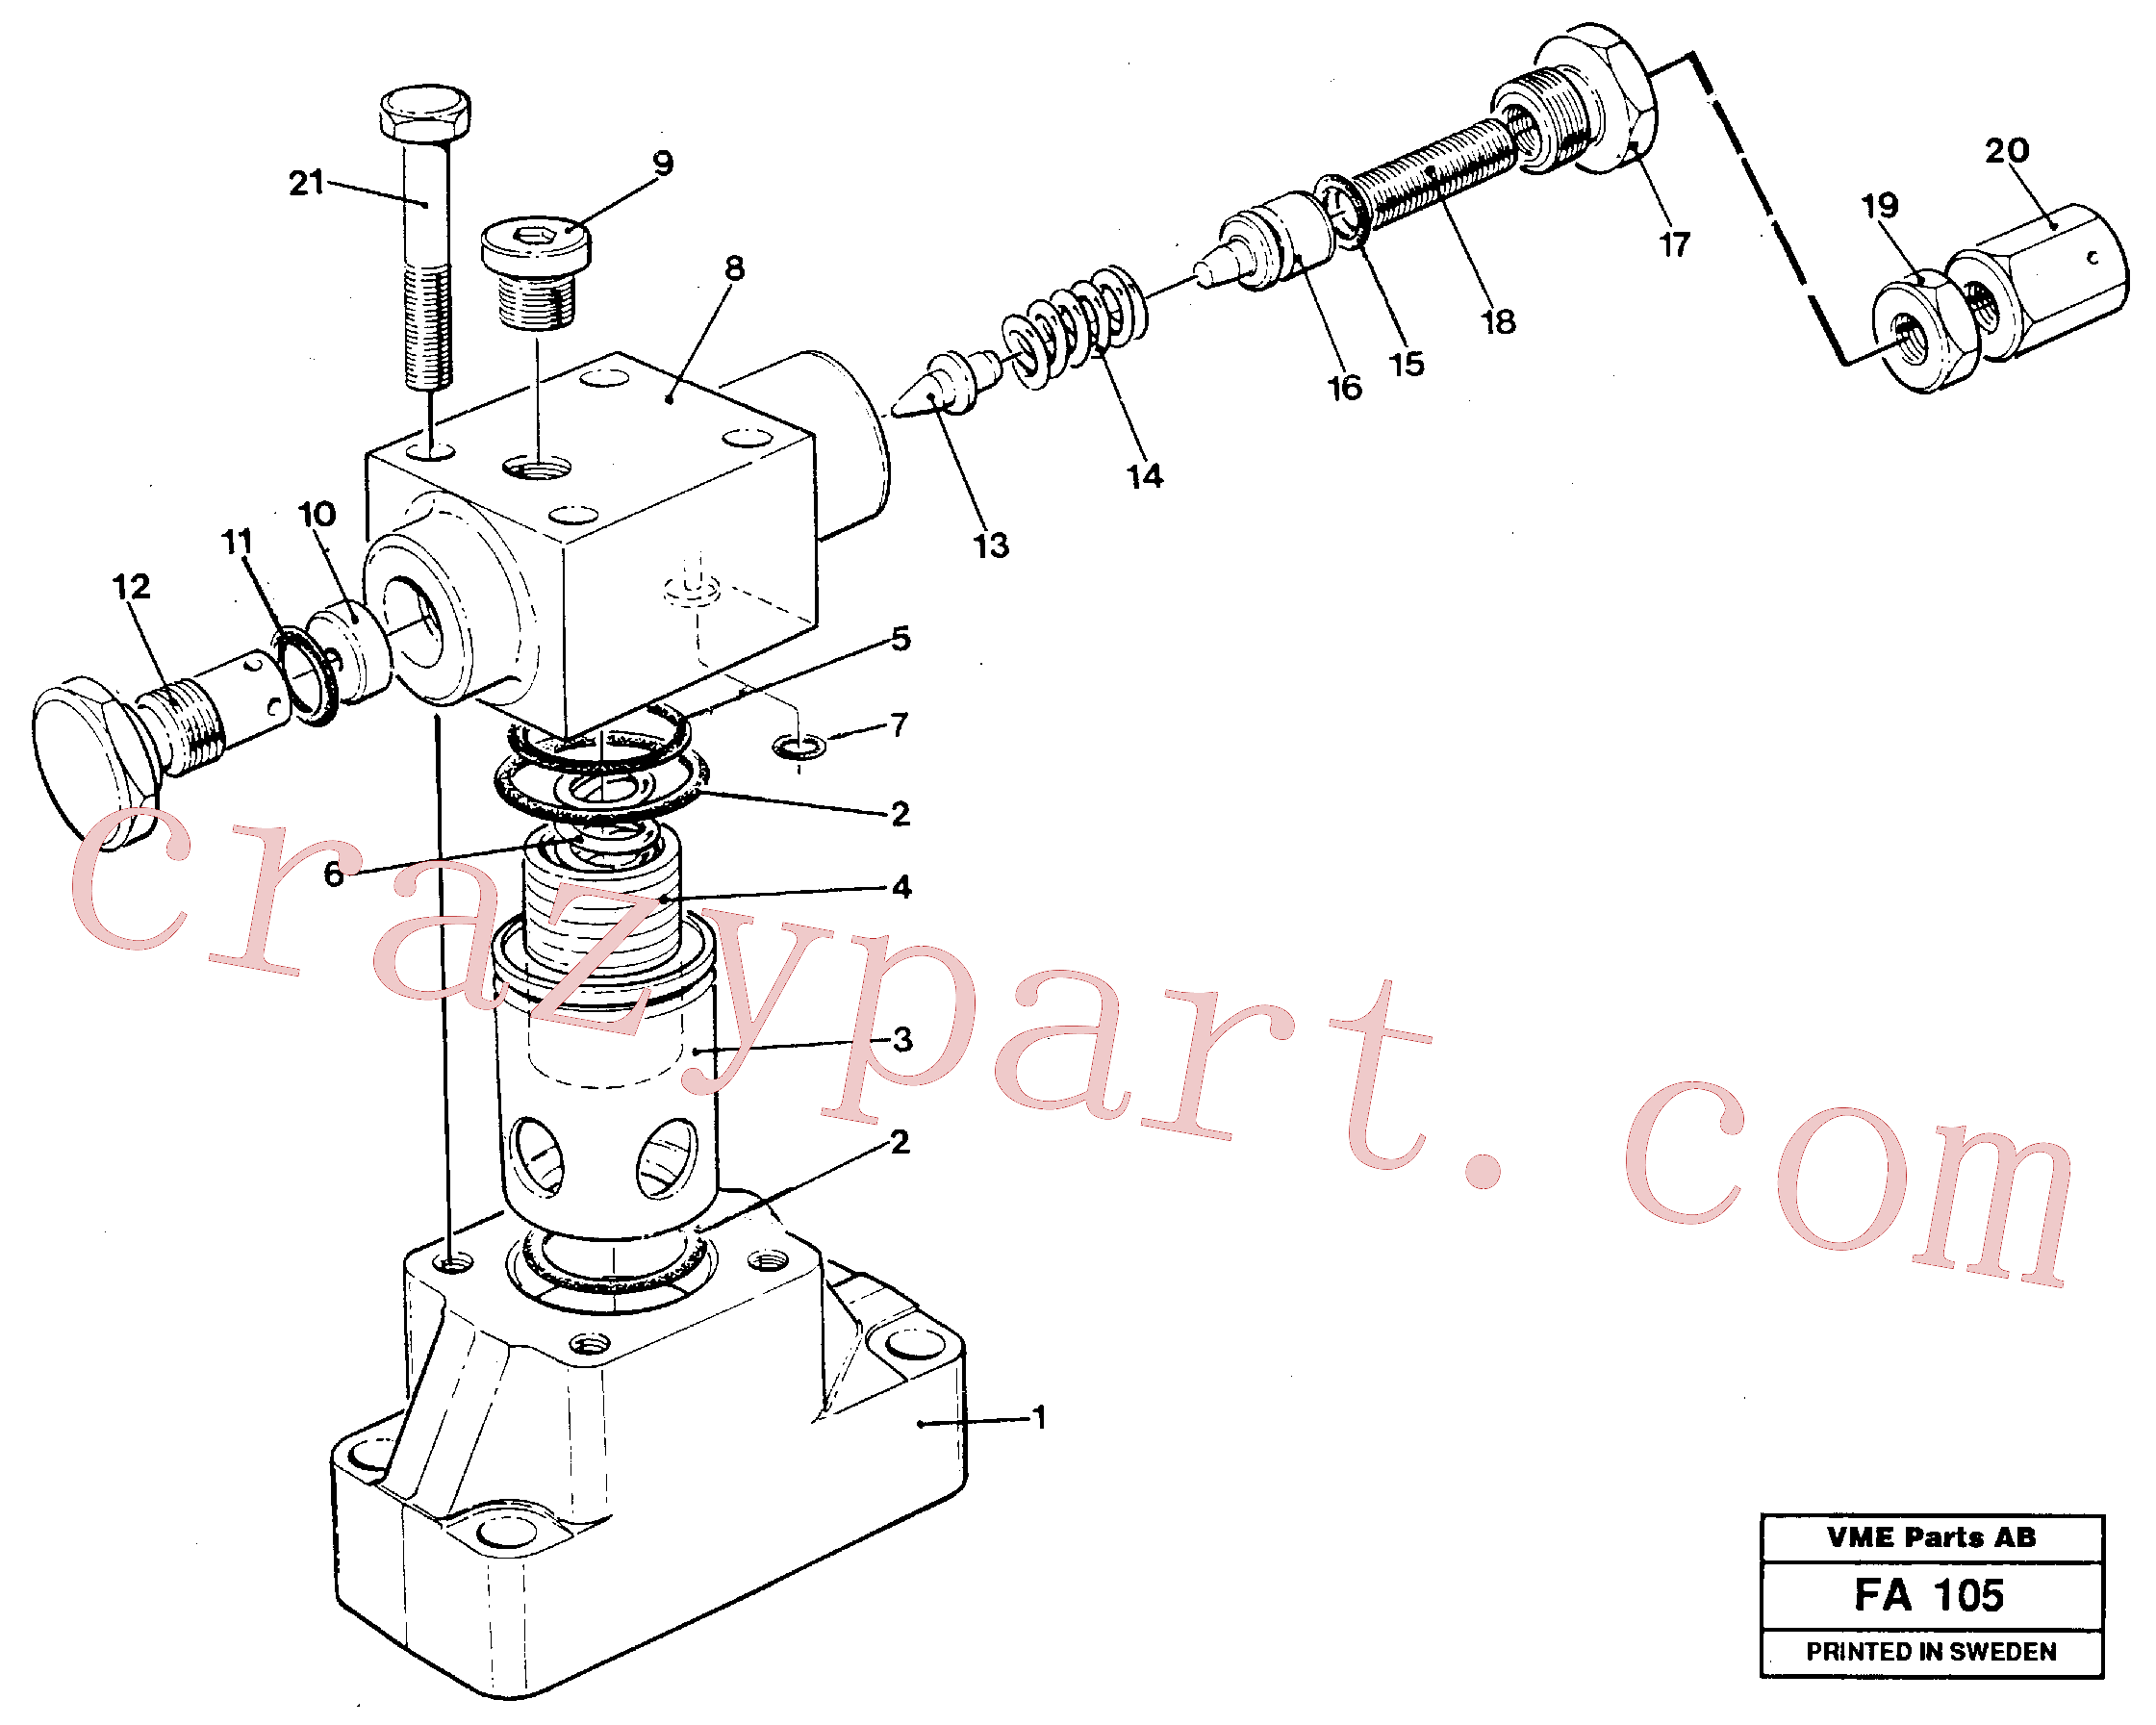 VOE14234399 for Volvo Pressure limiting valve(FA105 assembly)